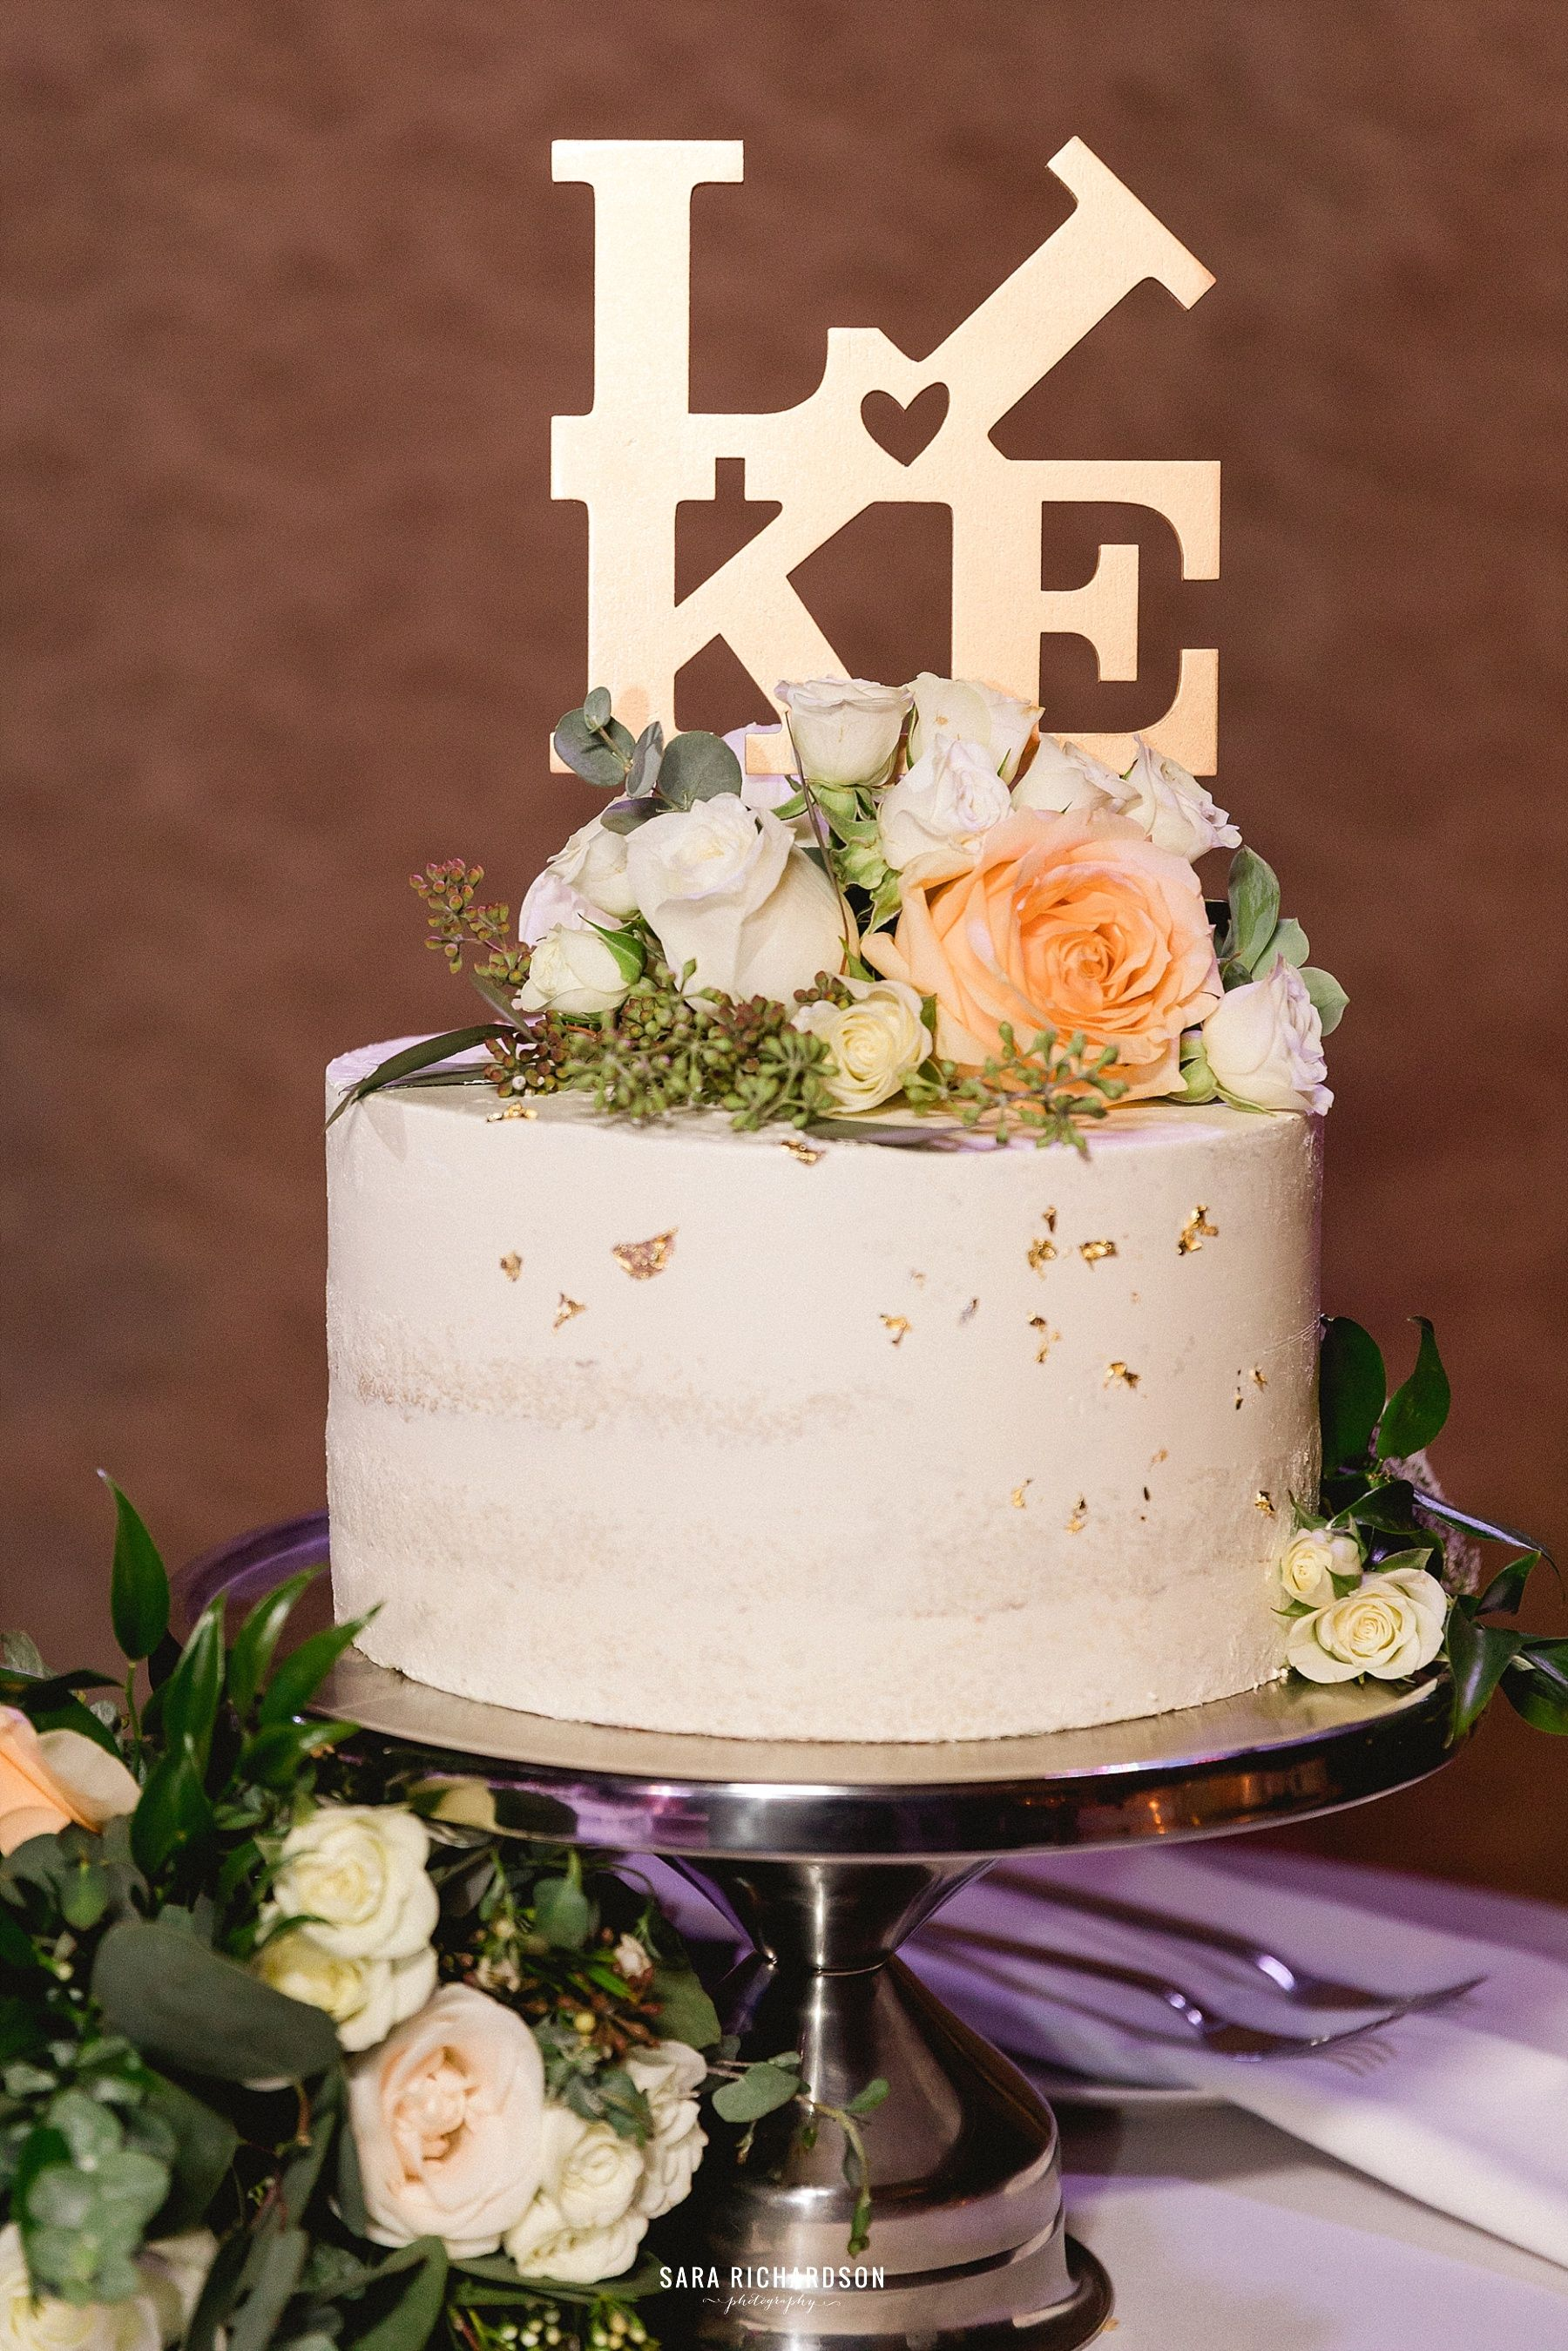 wedding Cake for Eric and Sara. The Wedding took place at LeBlanc in Los Cabos Mexico. Photography was done by Sara Richardson